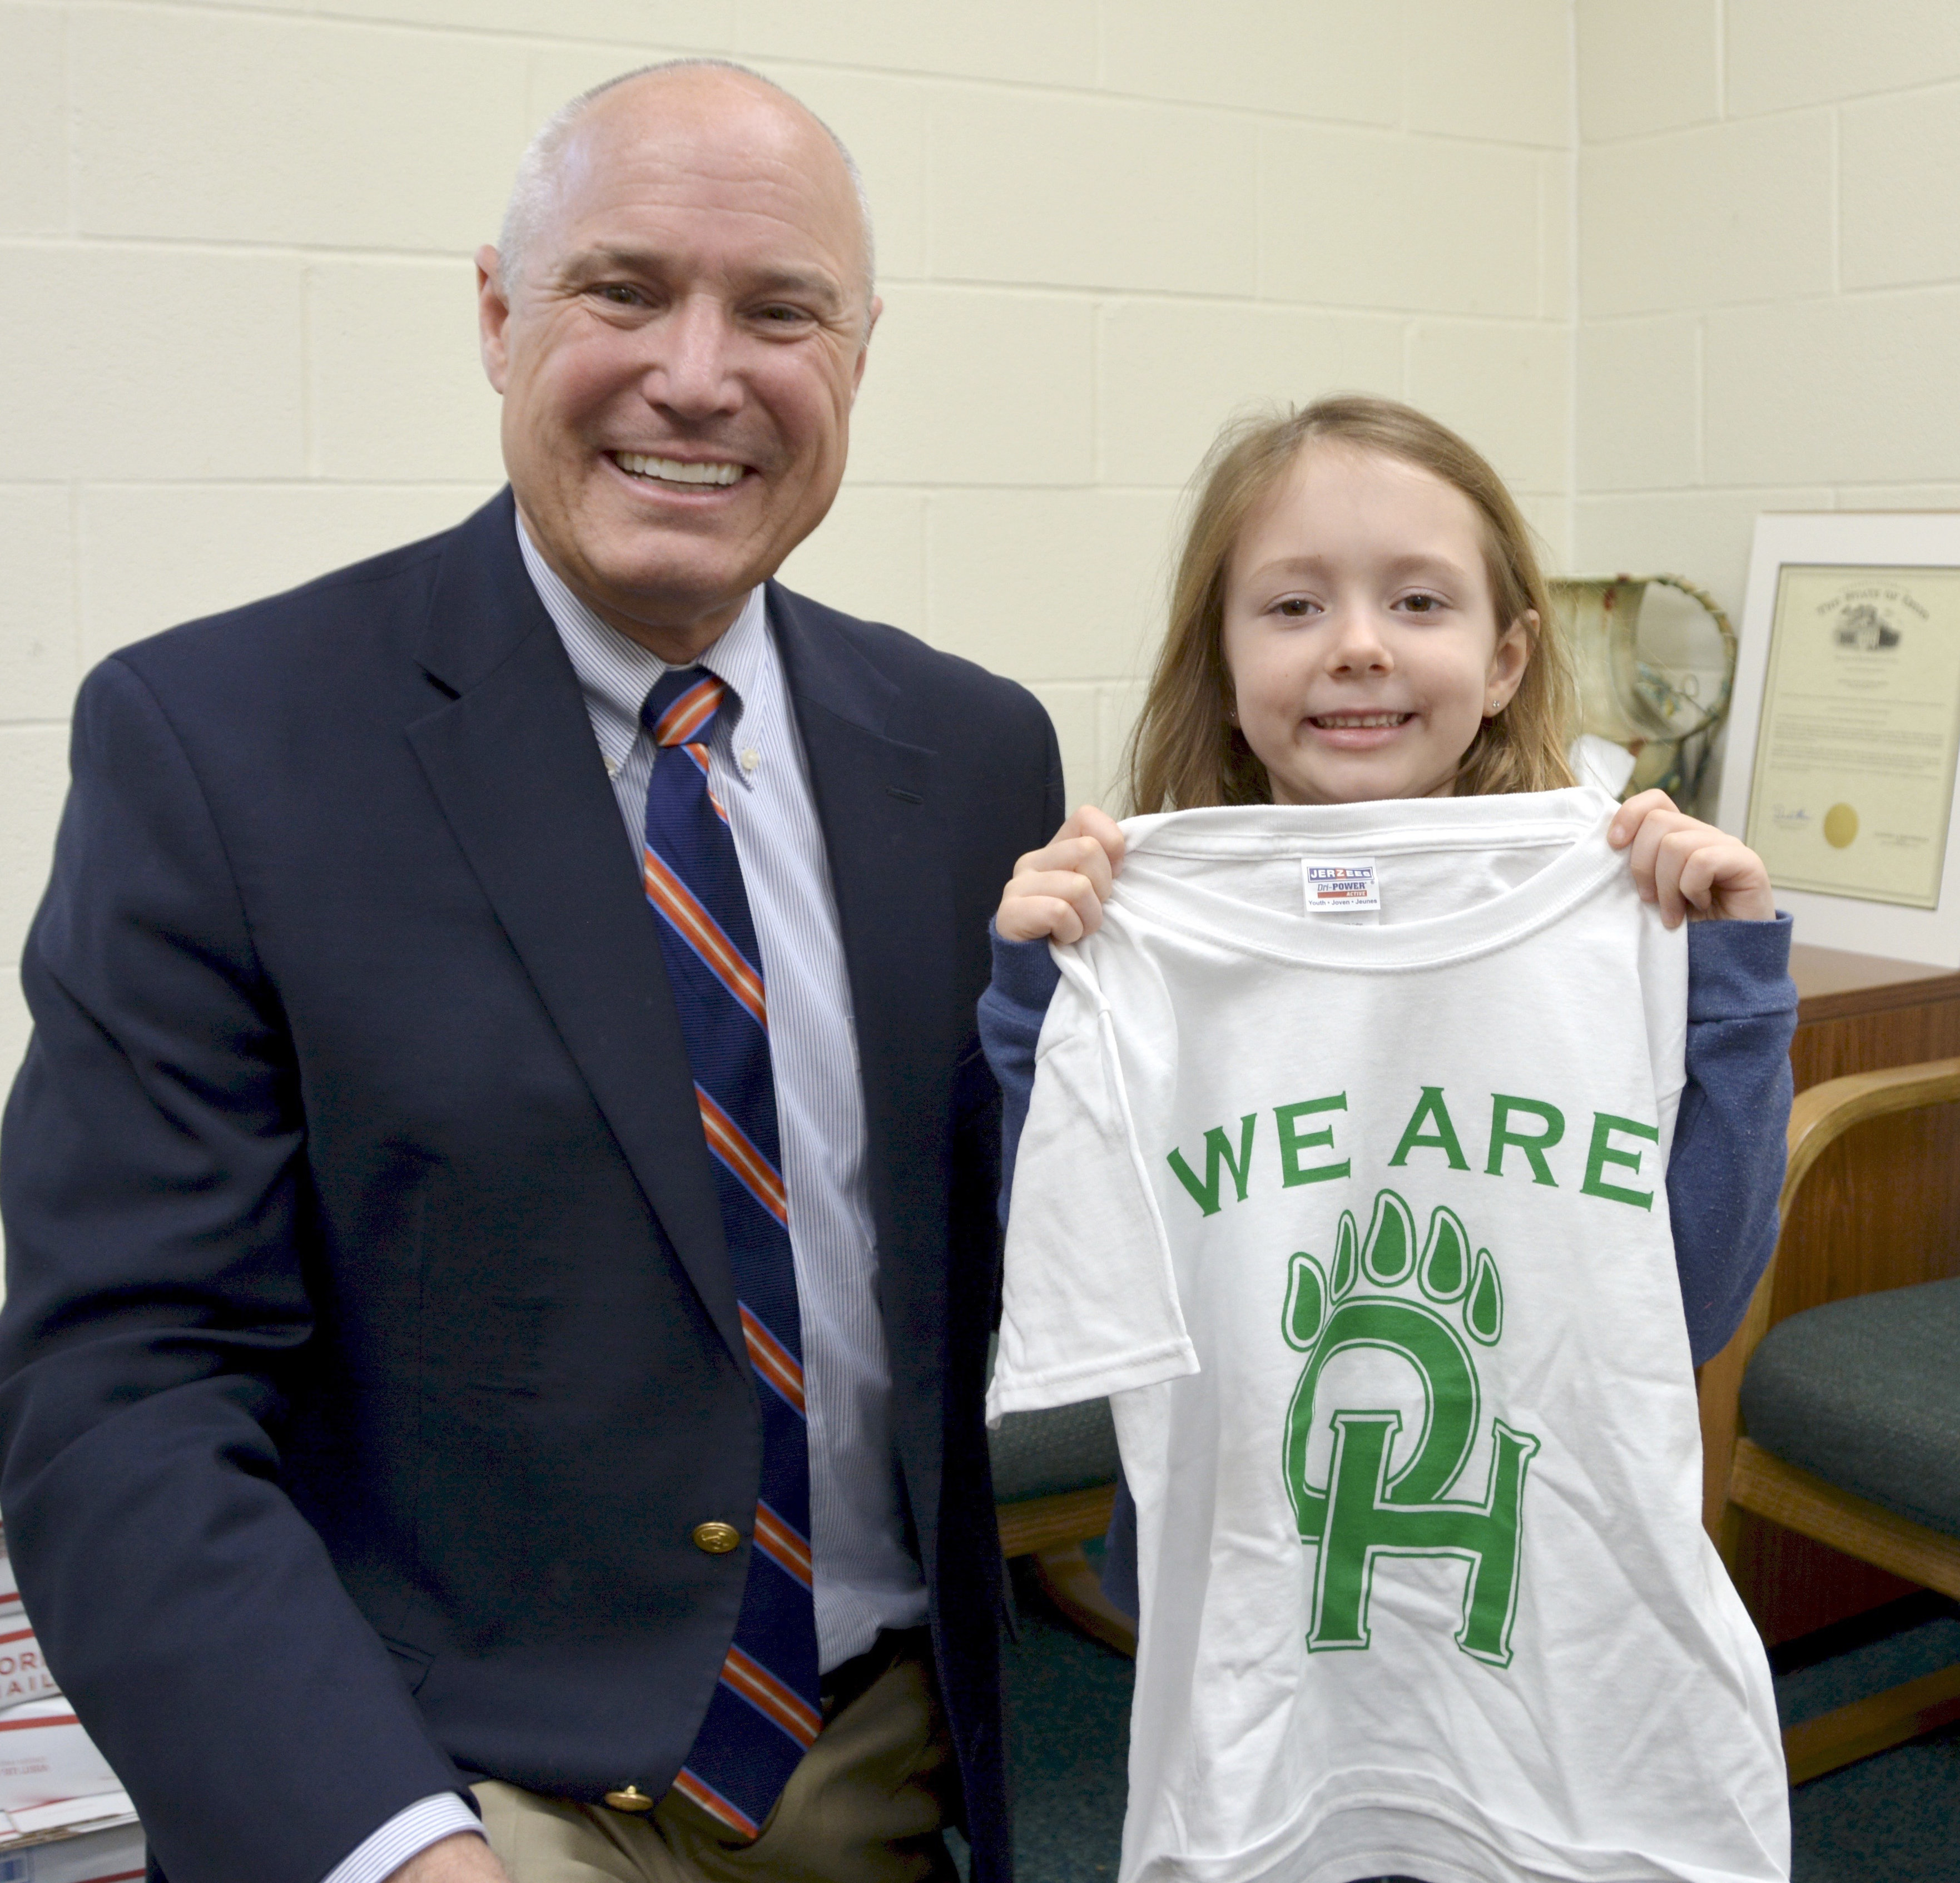 Dr. Miller with student T-shirt